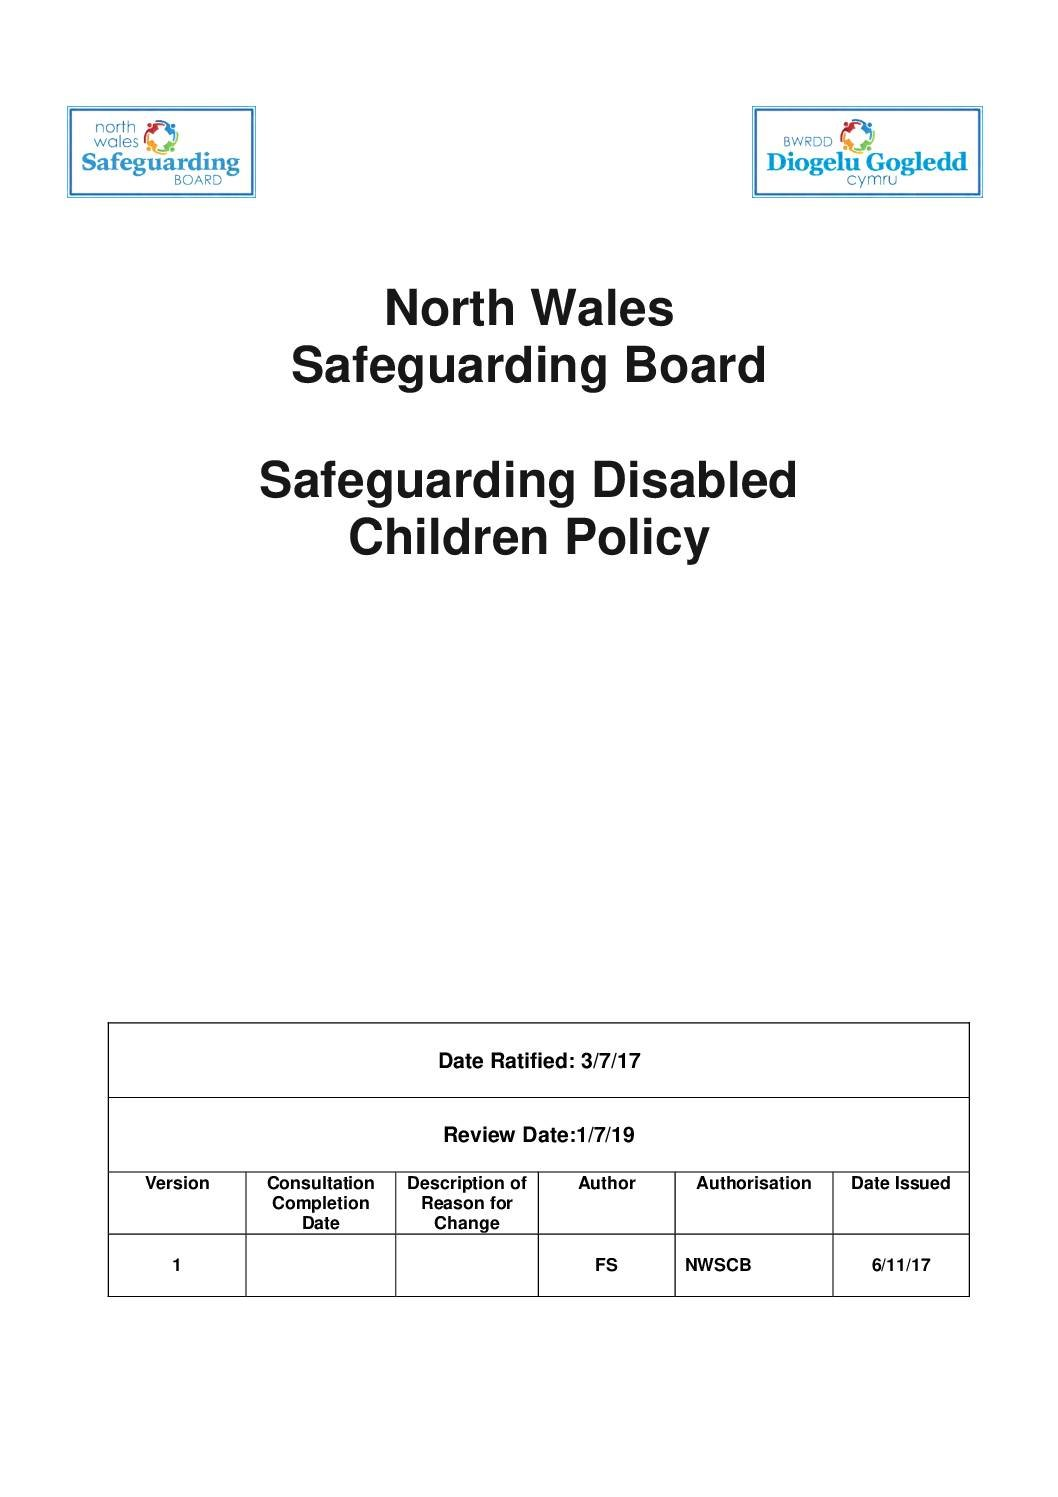 NWSB Safeguarding Disabled Children Policy